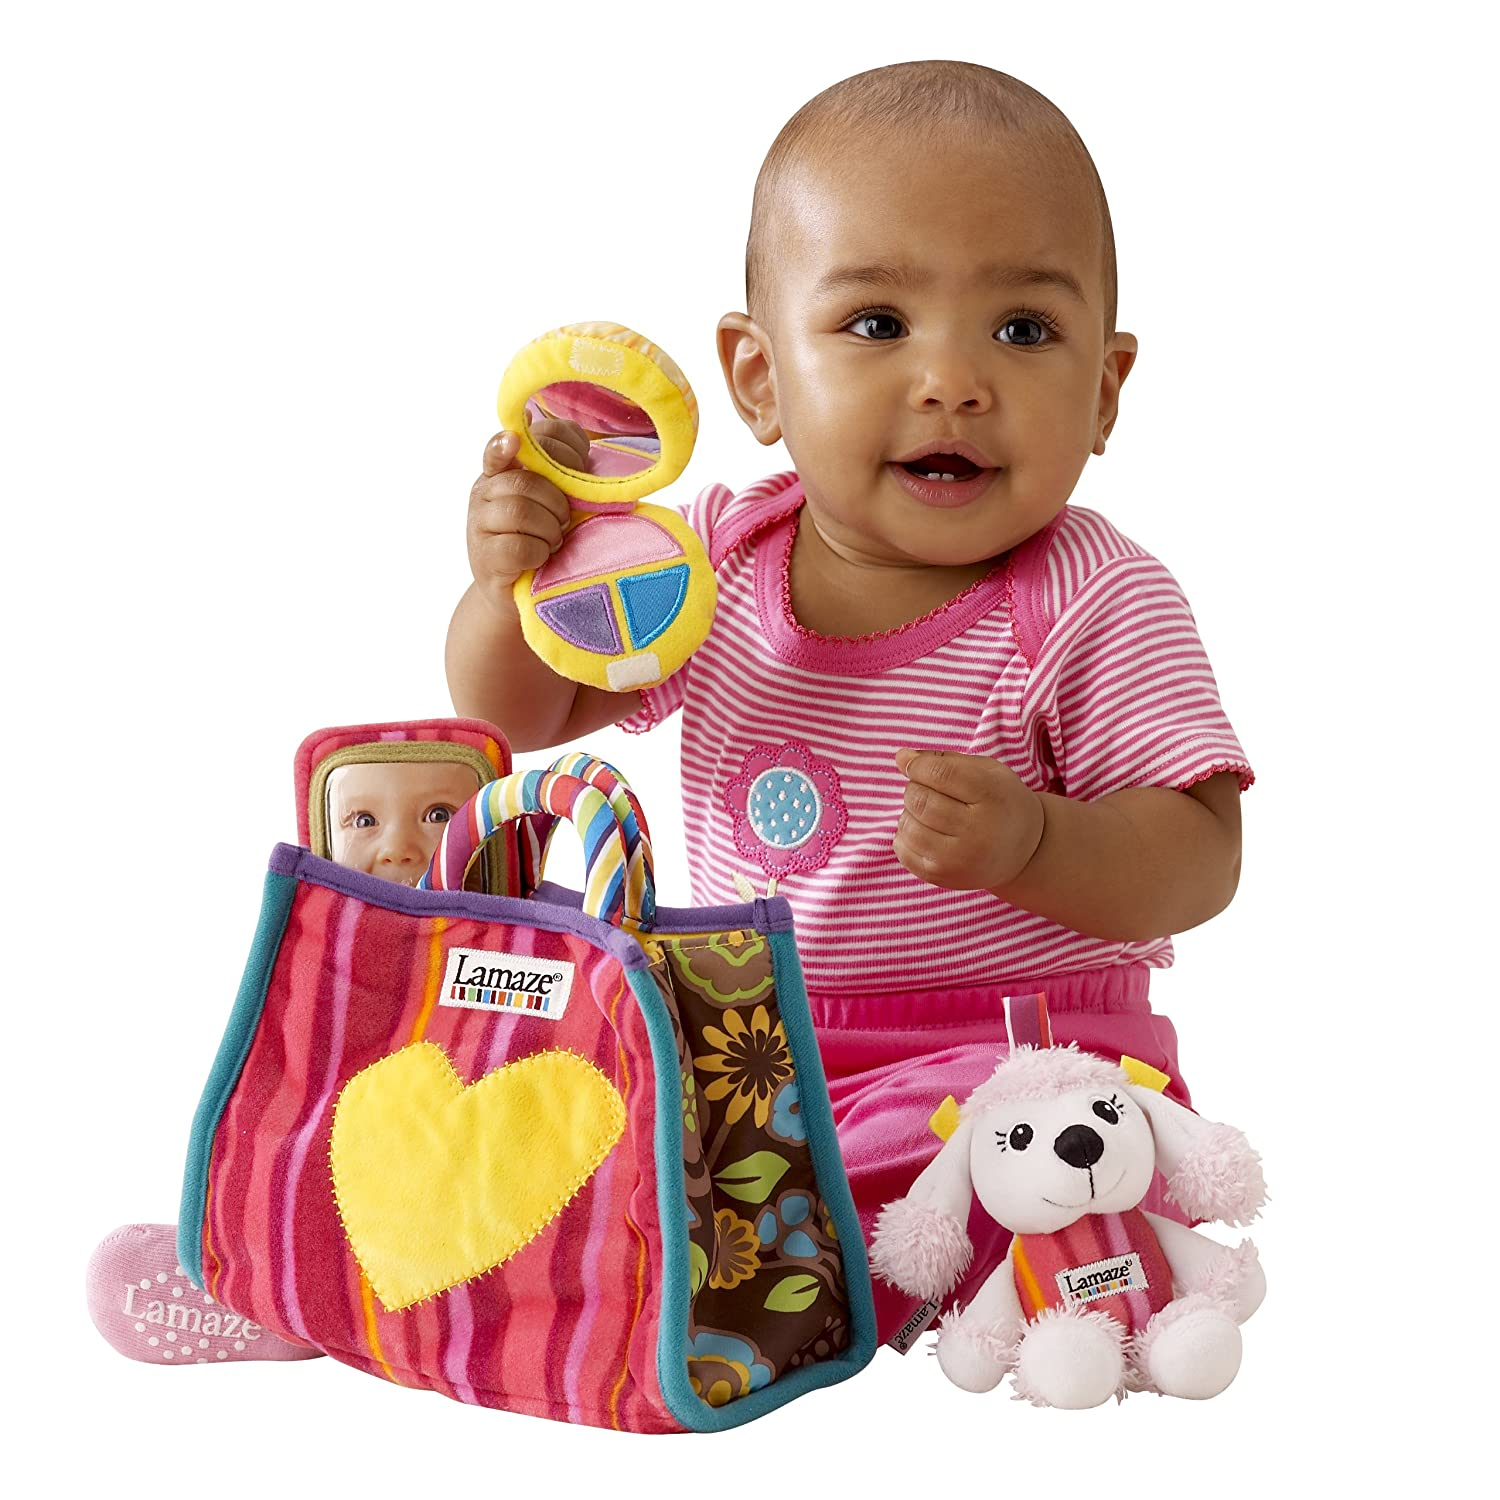 Lamaze My First Purse Fill and Spill Bag Amazon Baby